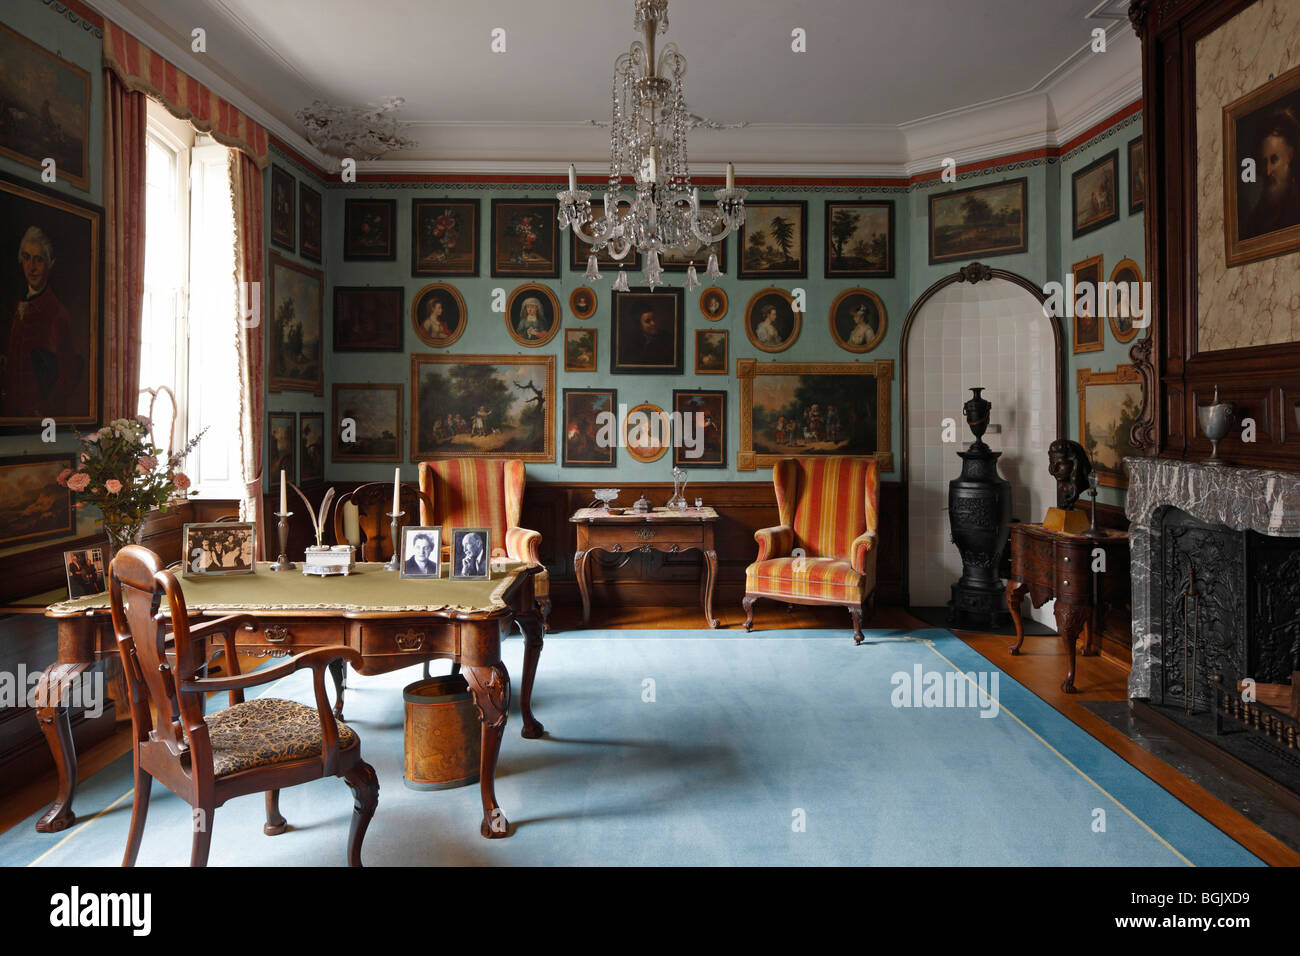 monschau rotes haus haus scheibler wohnhaus zum goldenen helm stock photo 27460757 alamy. Black Bedroom Furniture Sets. Home Design Ideas